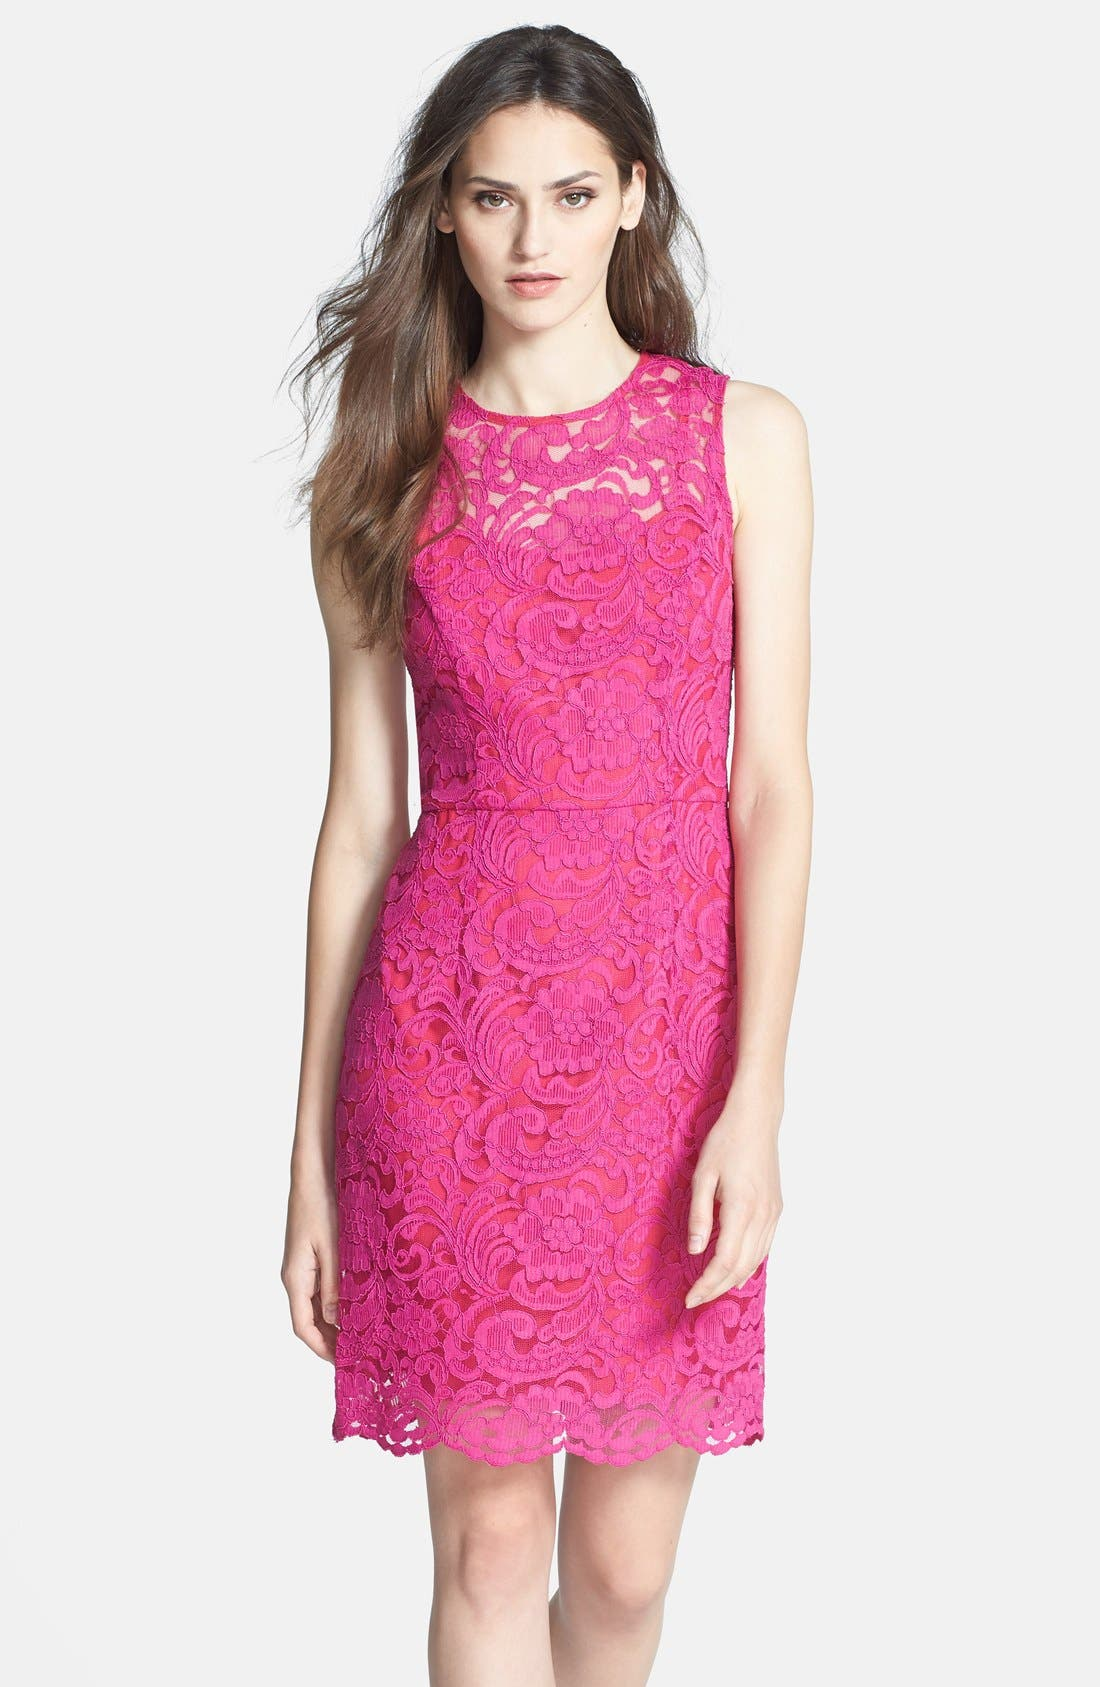 Main Image - Alexia Admor Back Bow Detail Lace Sheath Dress